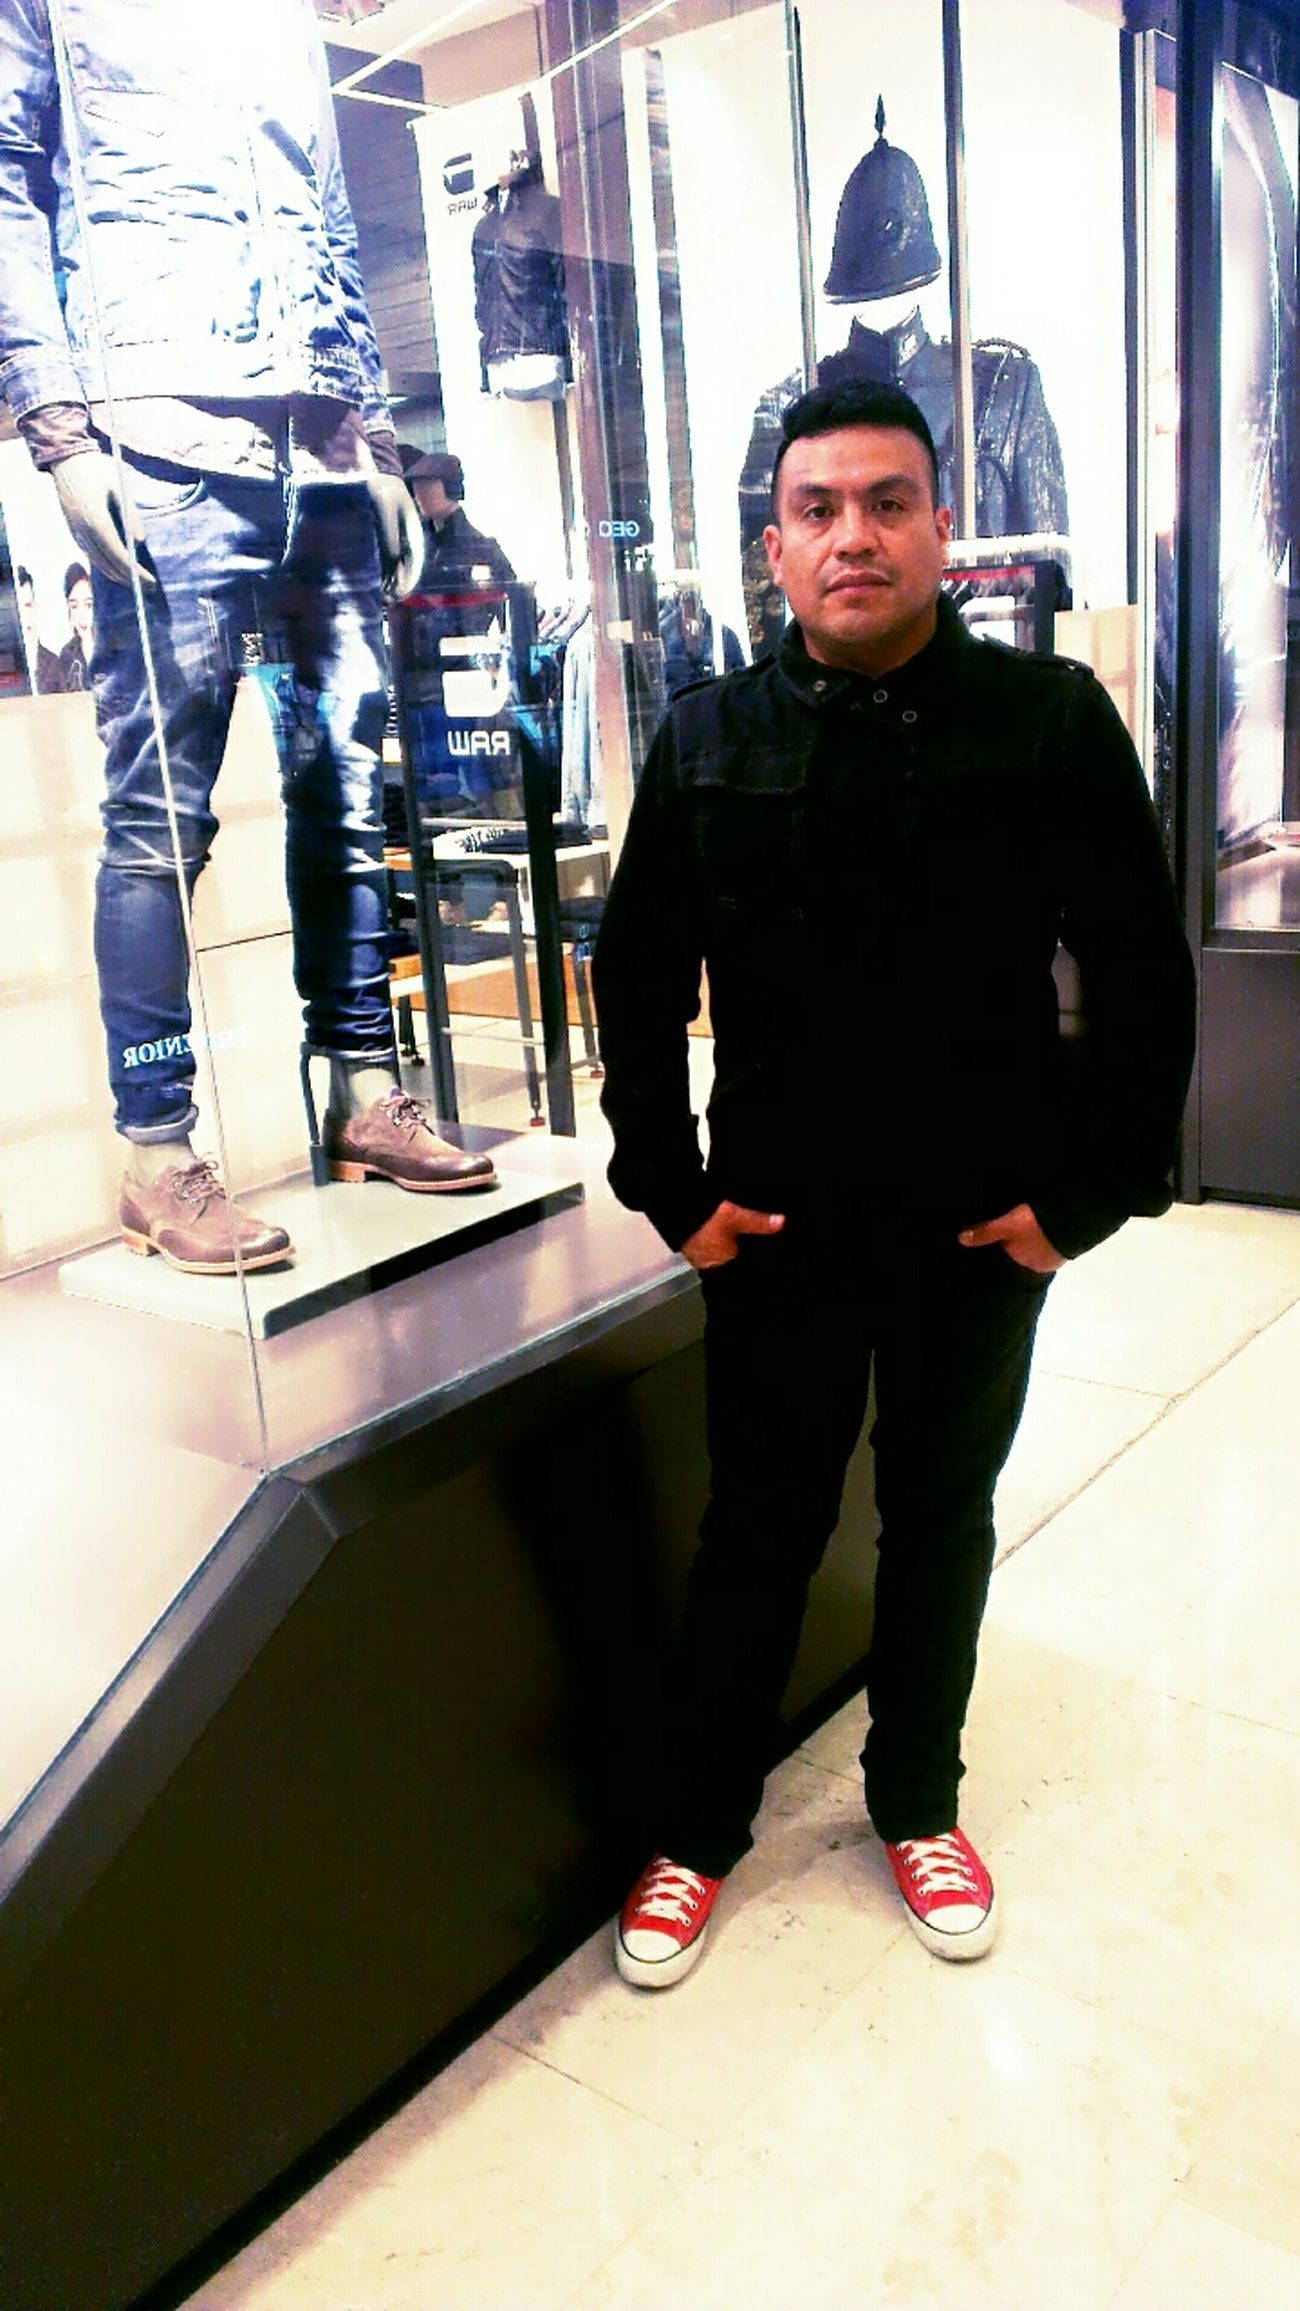 Shopping Gstar RAW Street Fashion G Star Raw Model Fotografia De Moda